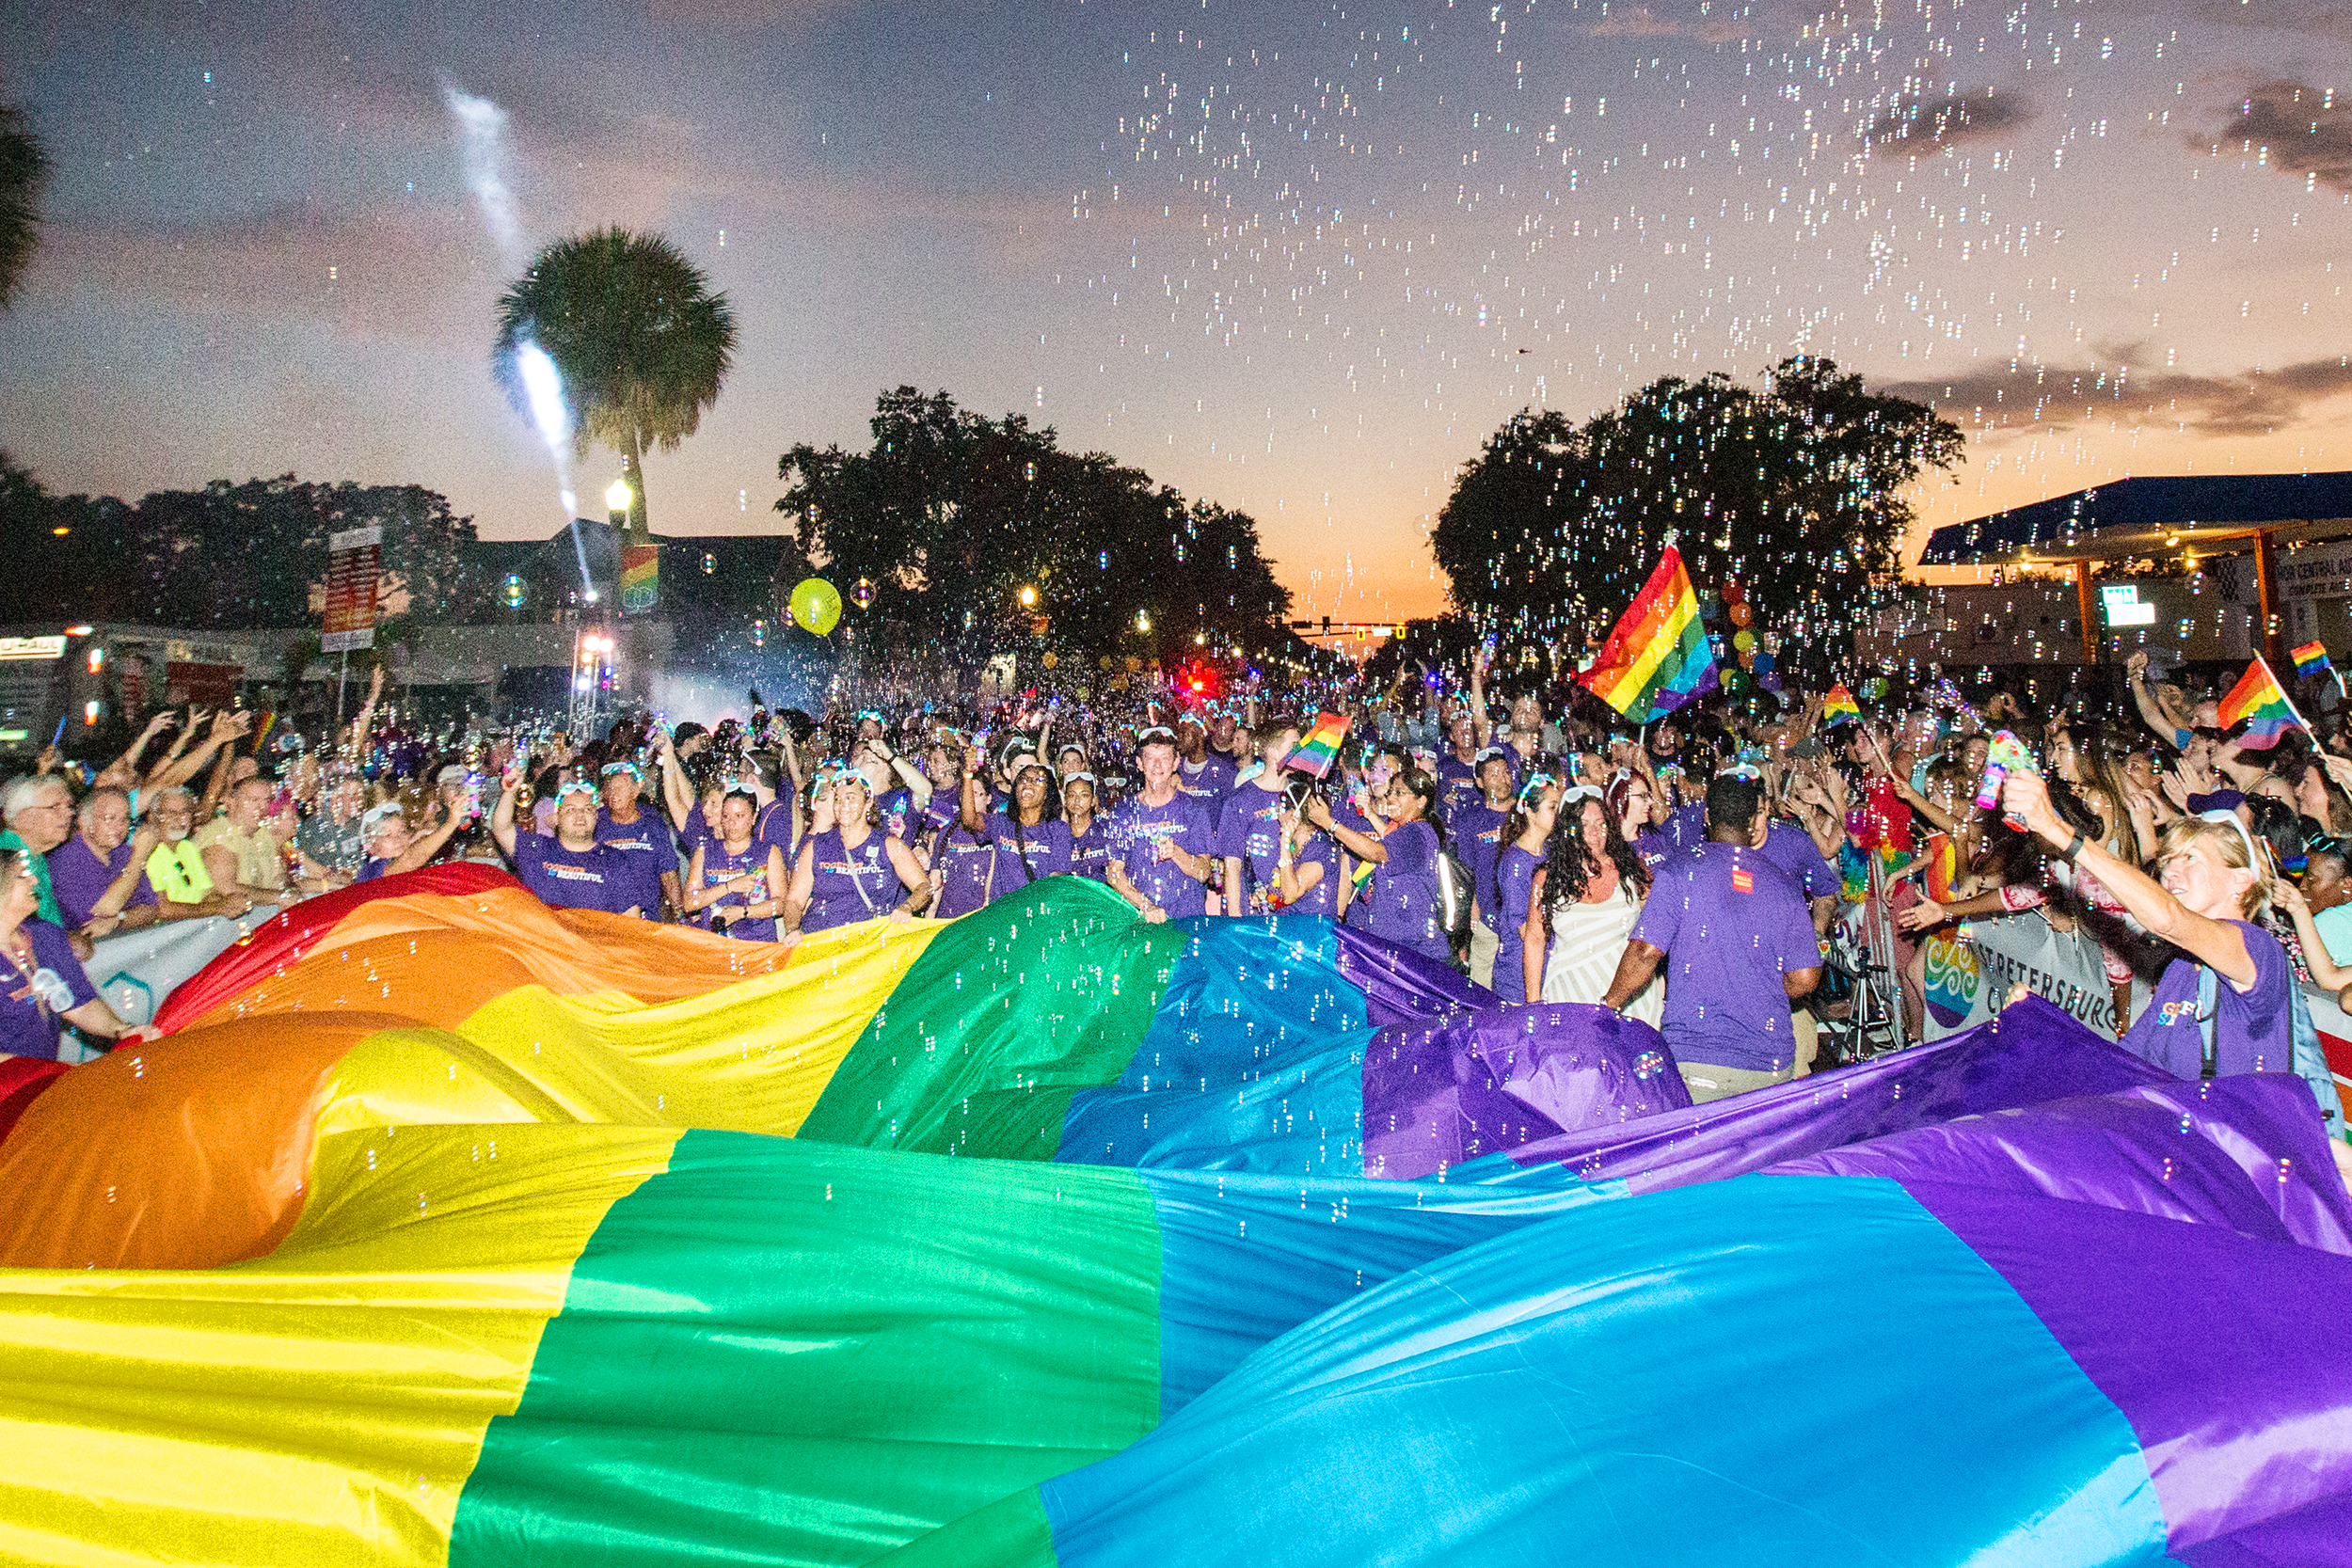 As the sun set tha parade got crankin' with the traditional carrying of the rainbow flag.jpg